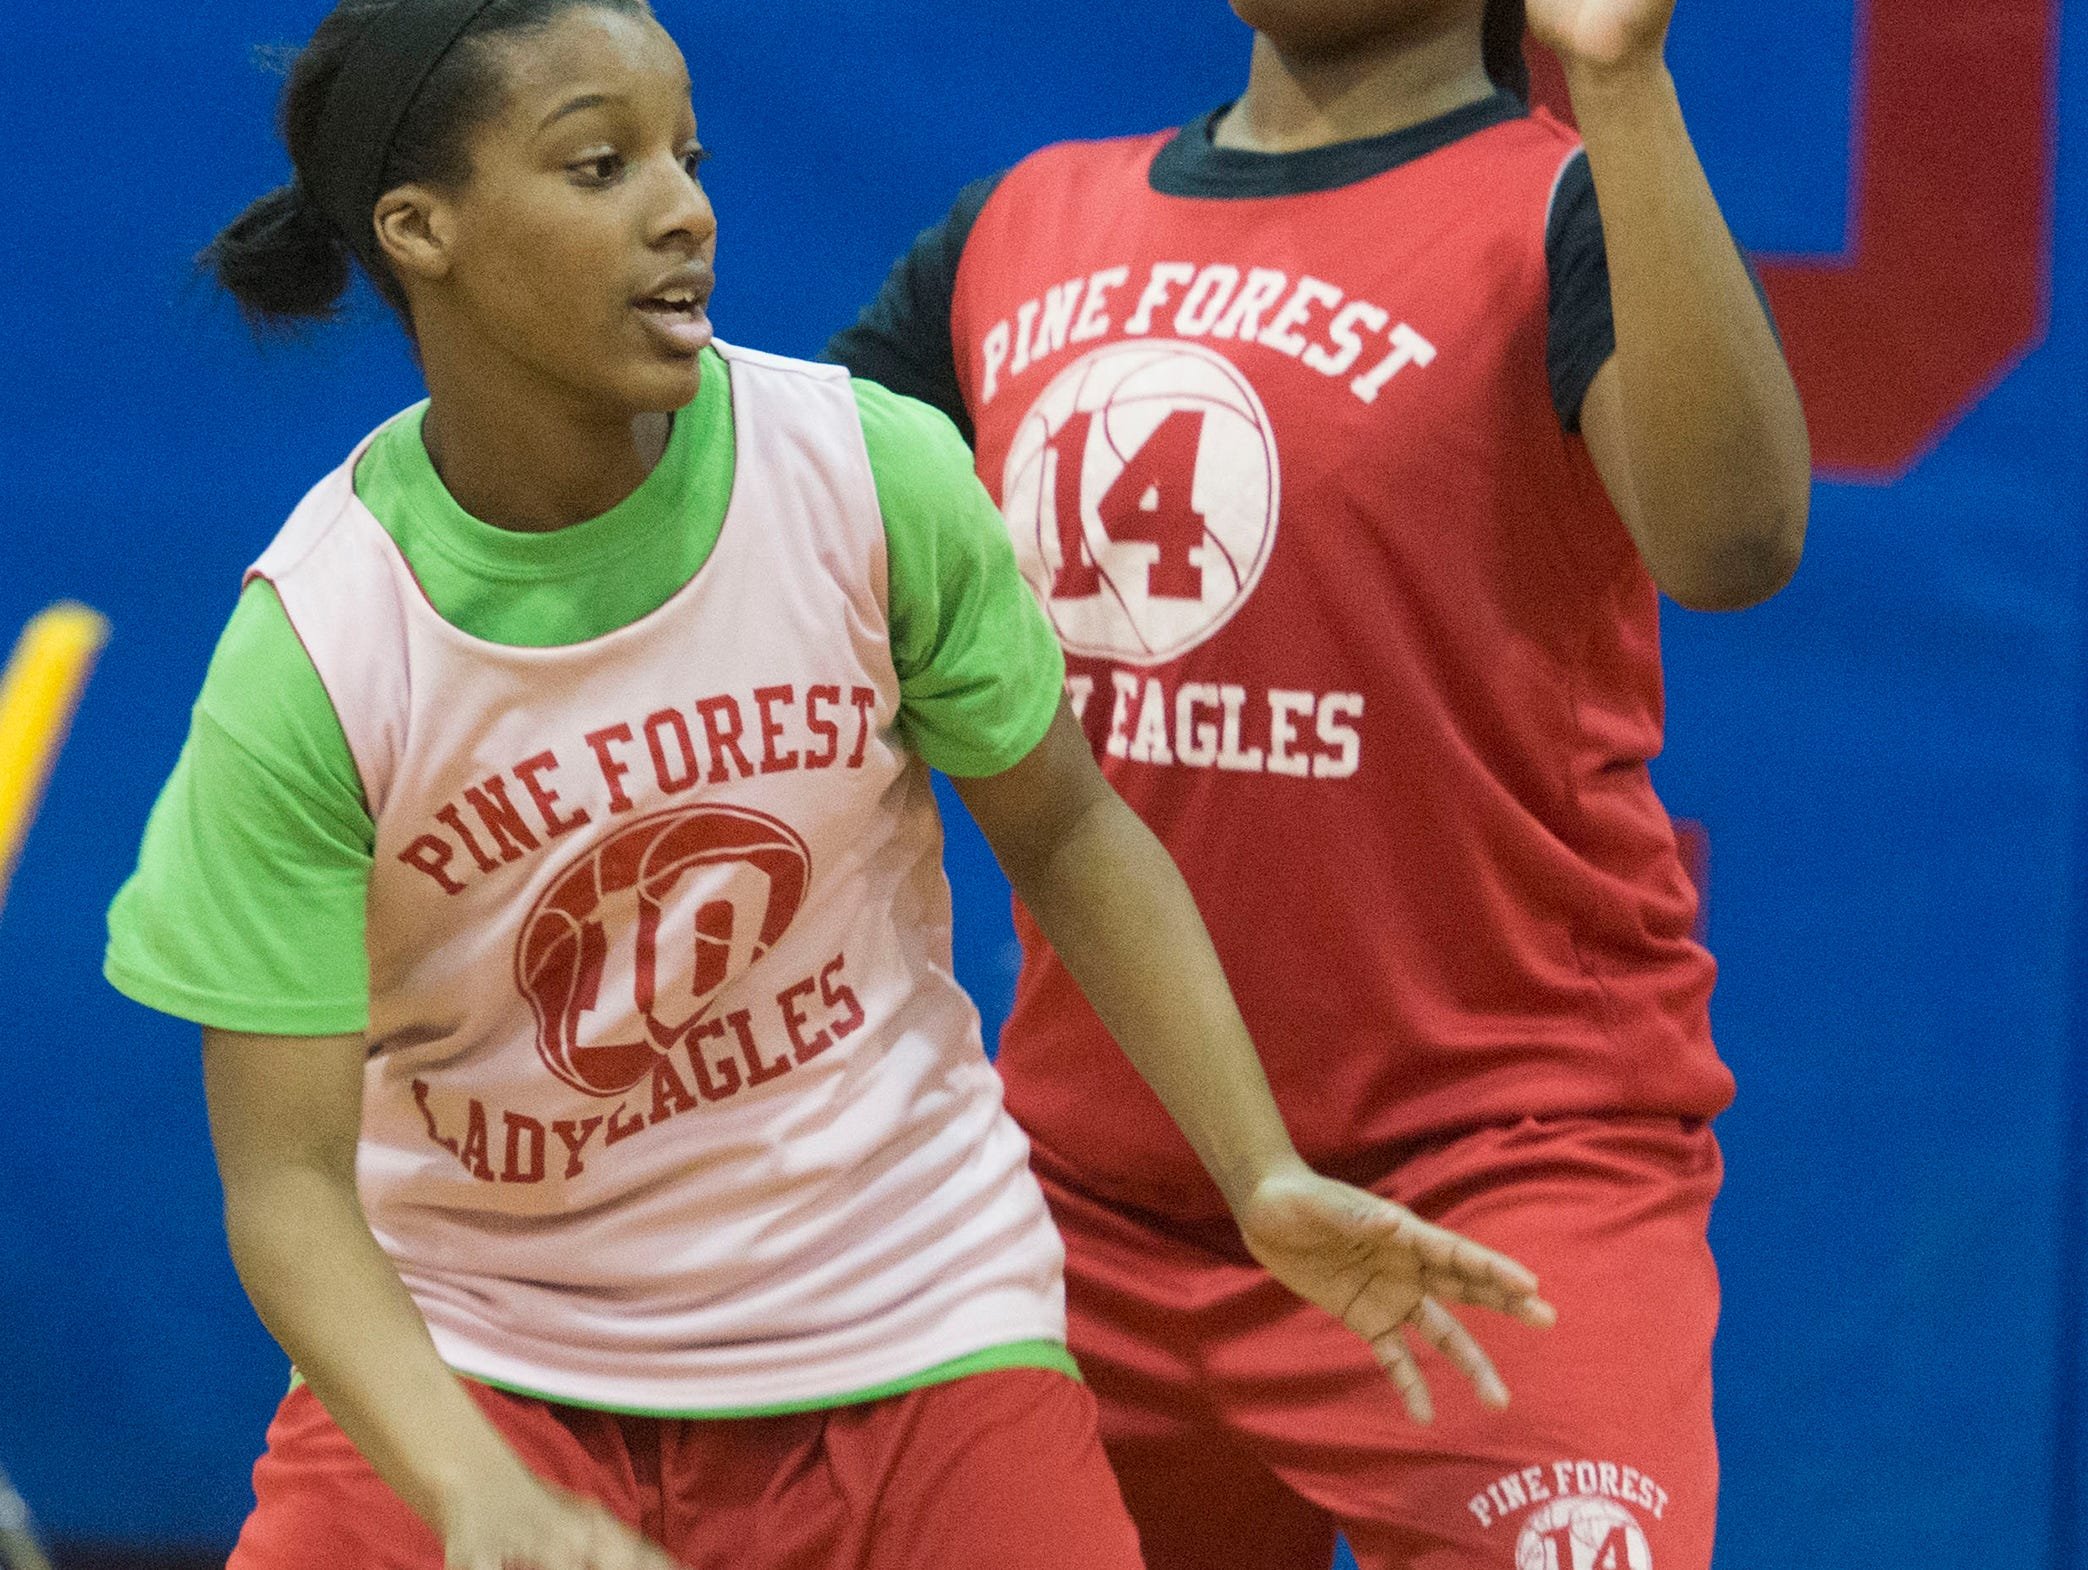 Kendauria Brooks, (No. 10) left, and Quiyana Riley, (No. 14) right, work through drills during practice as The Pine Forest High School girls basketball team prepare for the district 1-6A tournament.